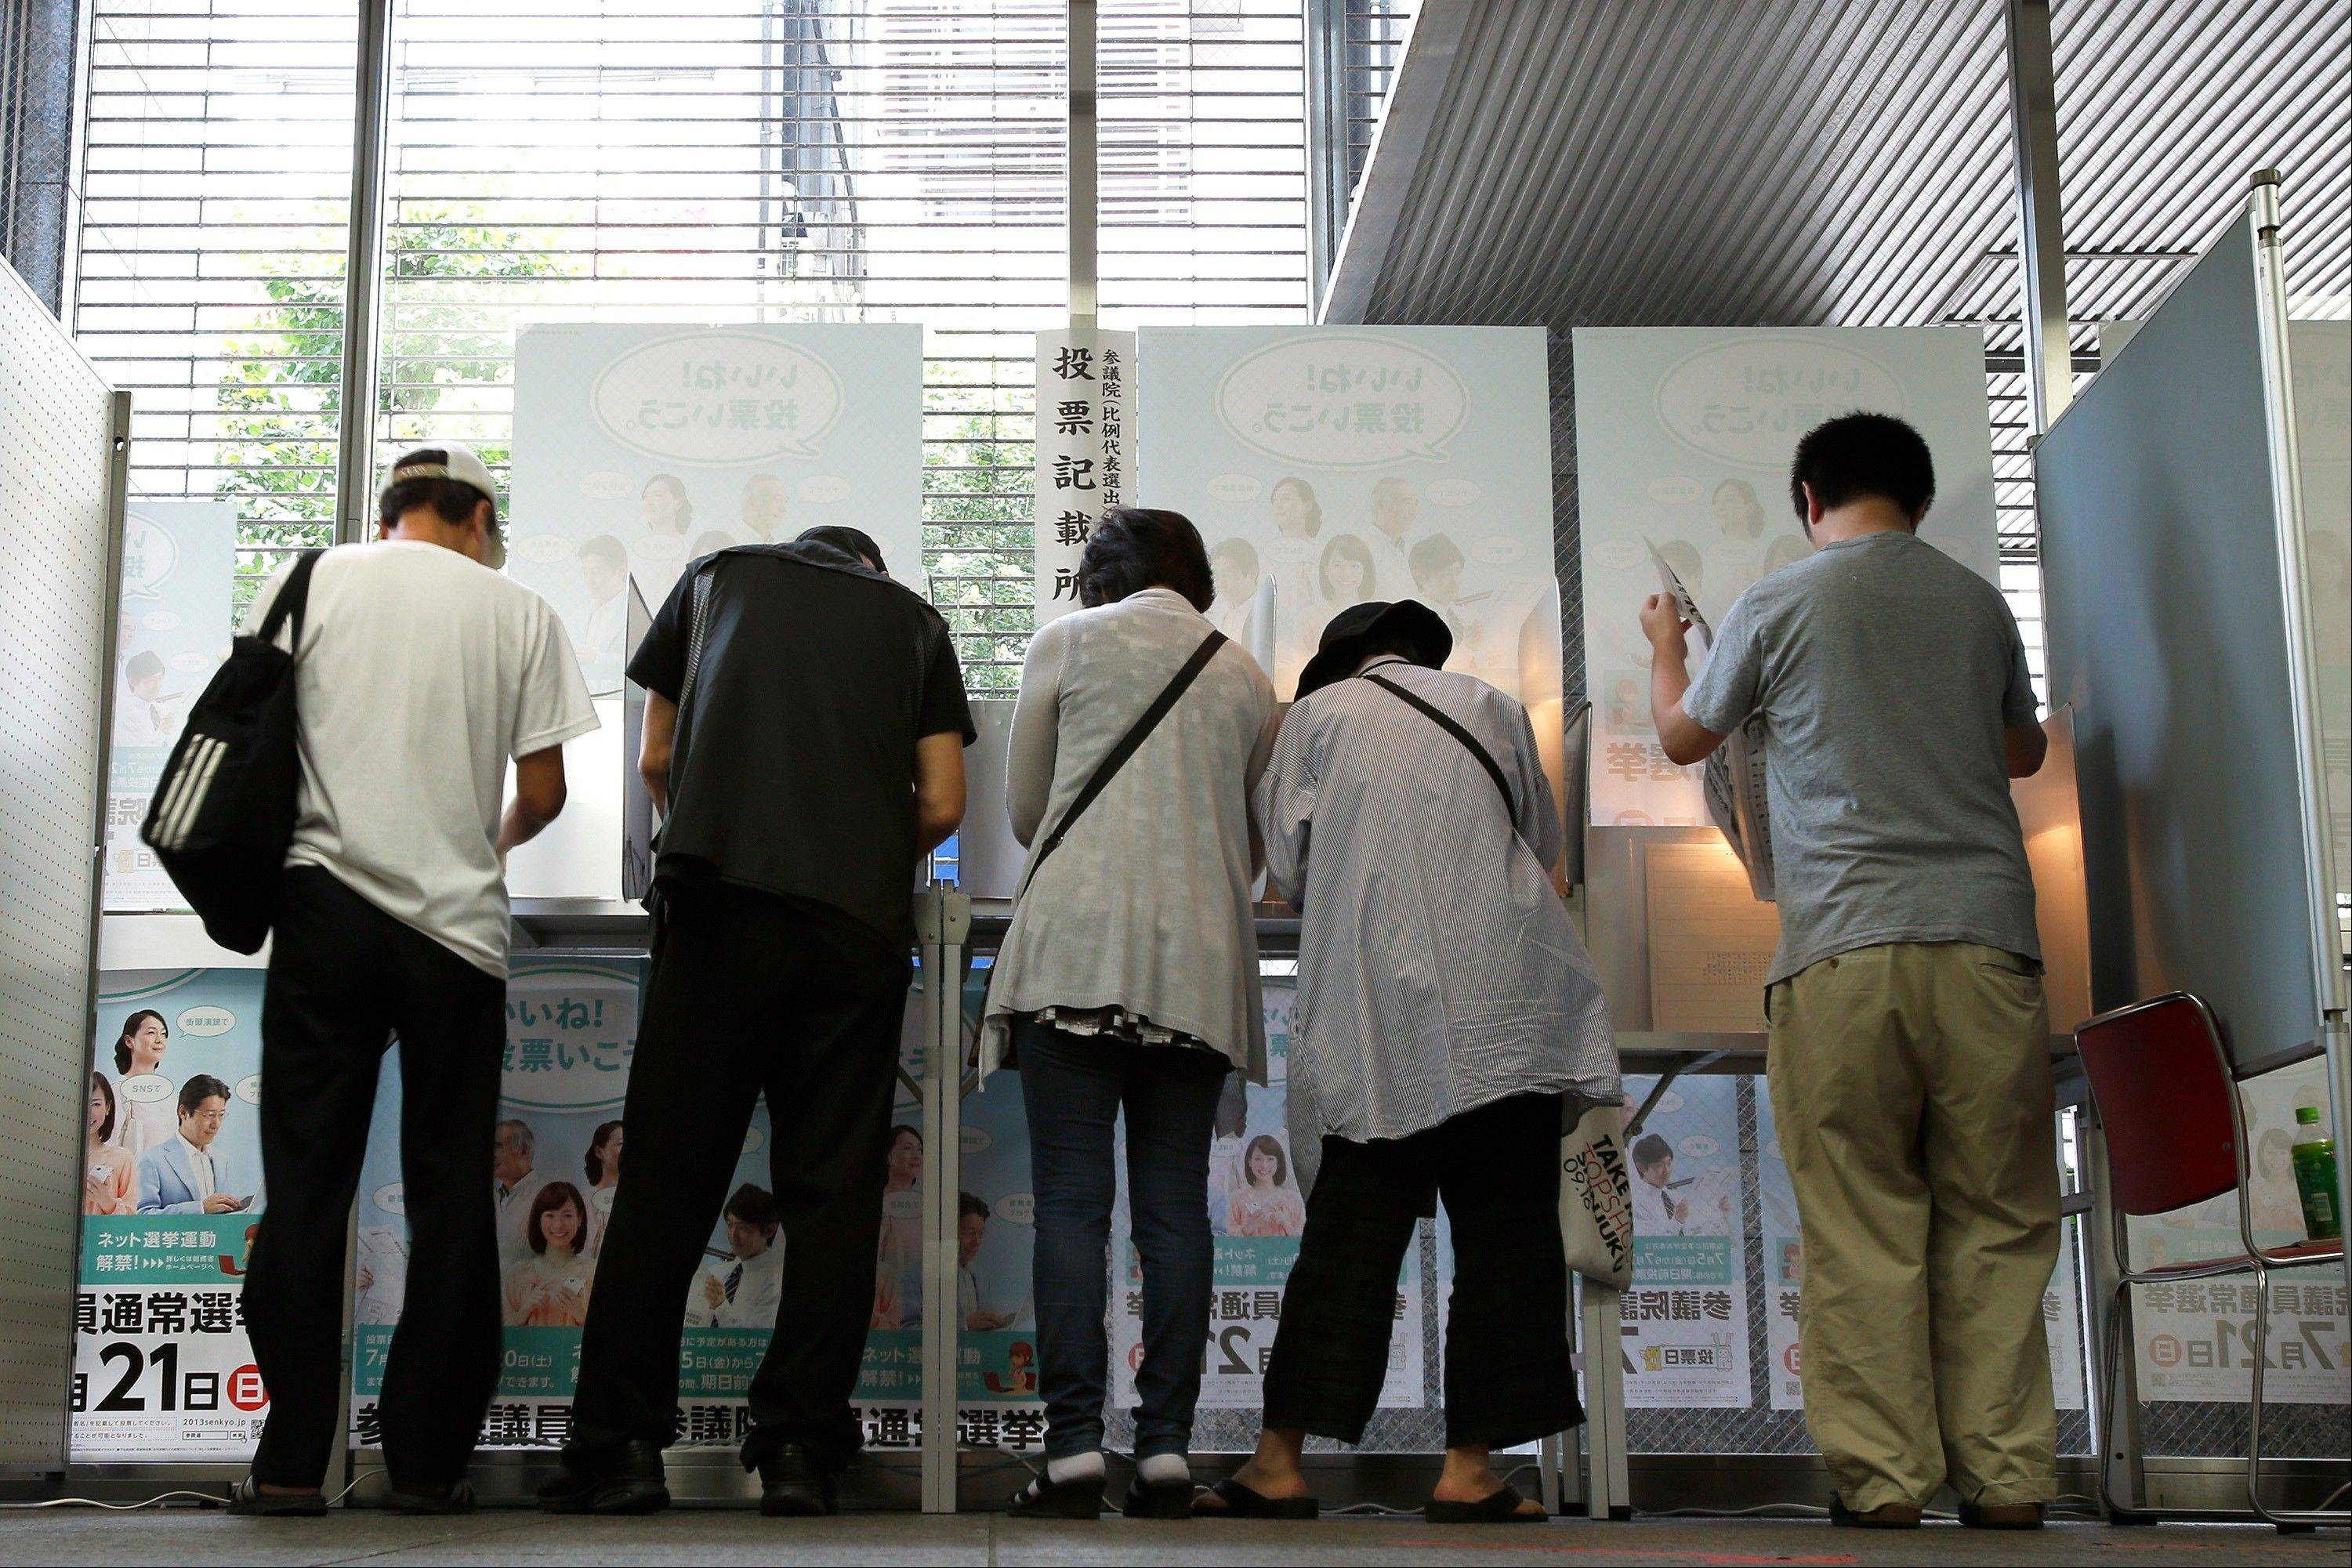 Voters fill out their ballots for the Japanese parliament�s upper house election at a polling station in Tokyo, Japan, on Sunday, July 21, 2013. Japanese voters are set to hand Prime Minister Shinzo Abe control of both houses of Parliament, giving him a mandate to extend his overhaul of the world�s third-biggest economy.